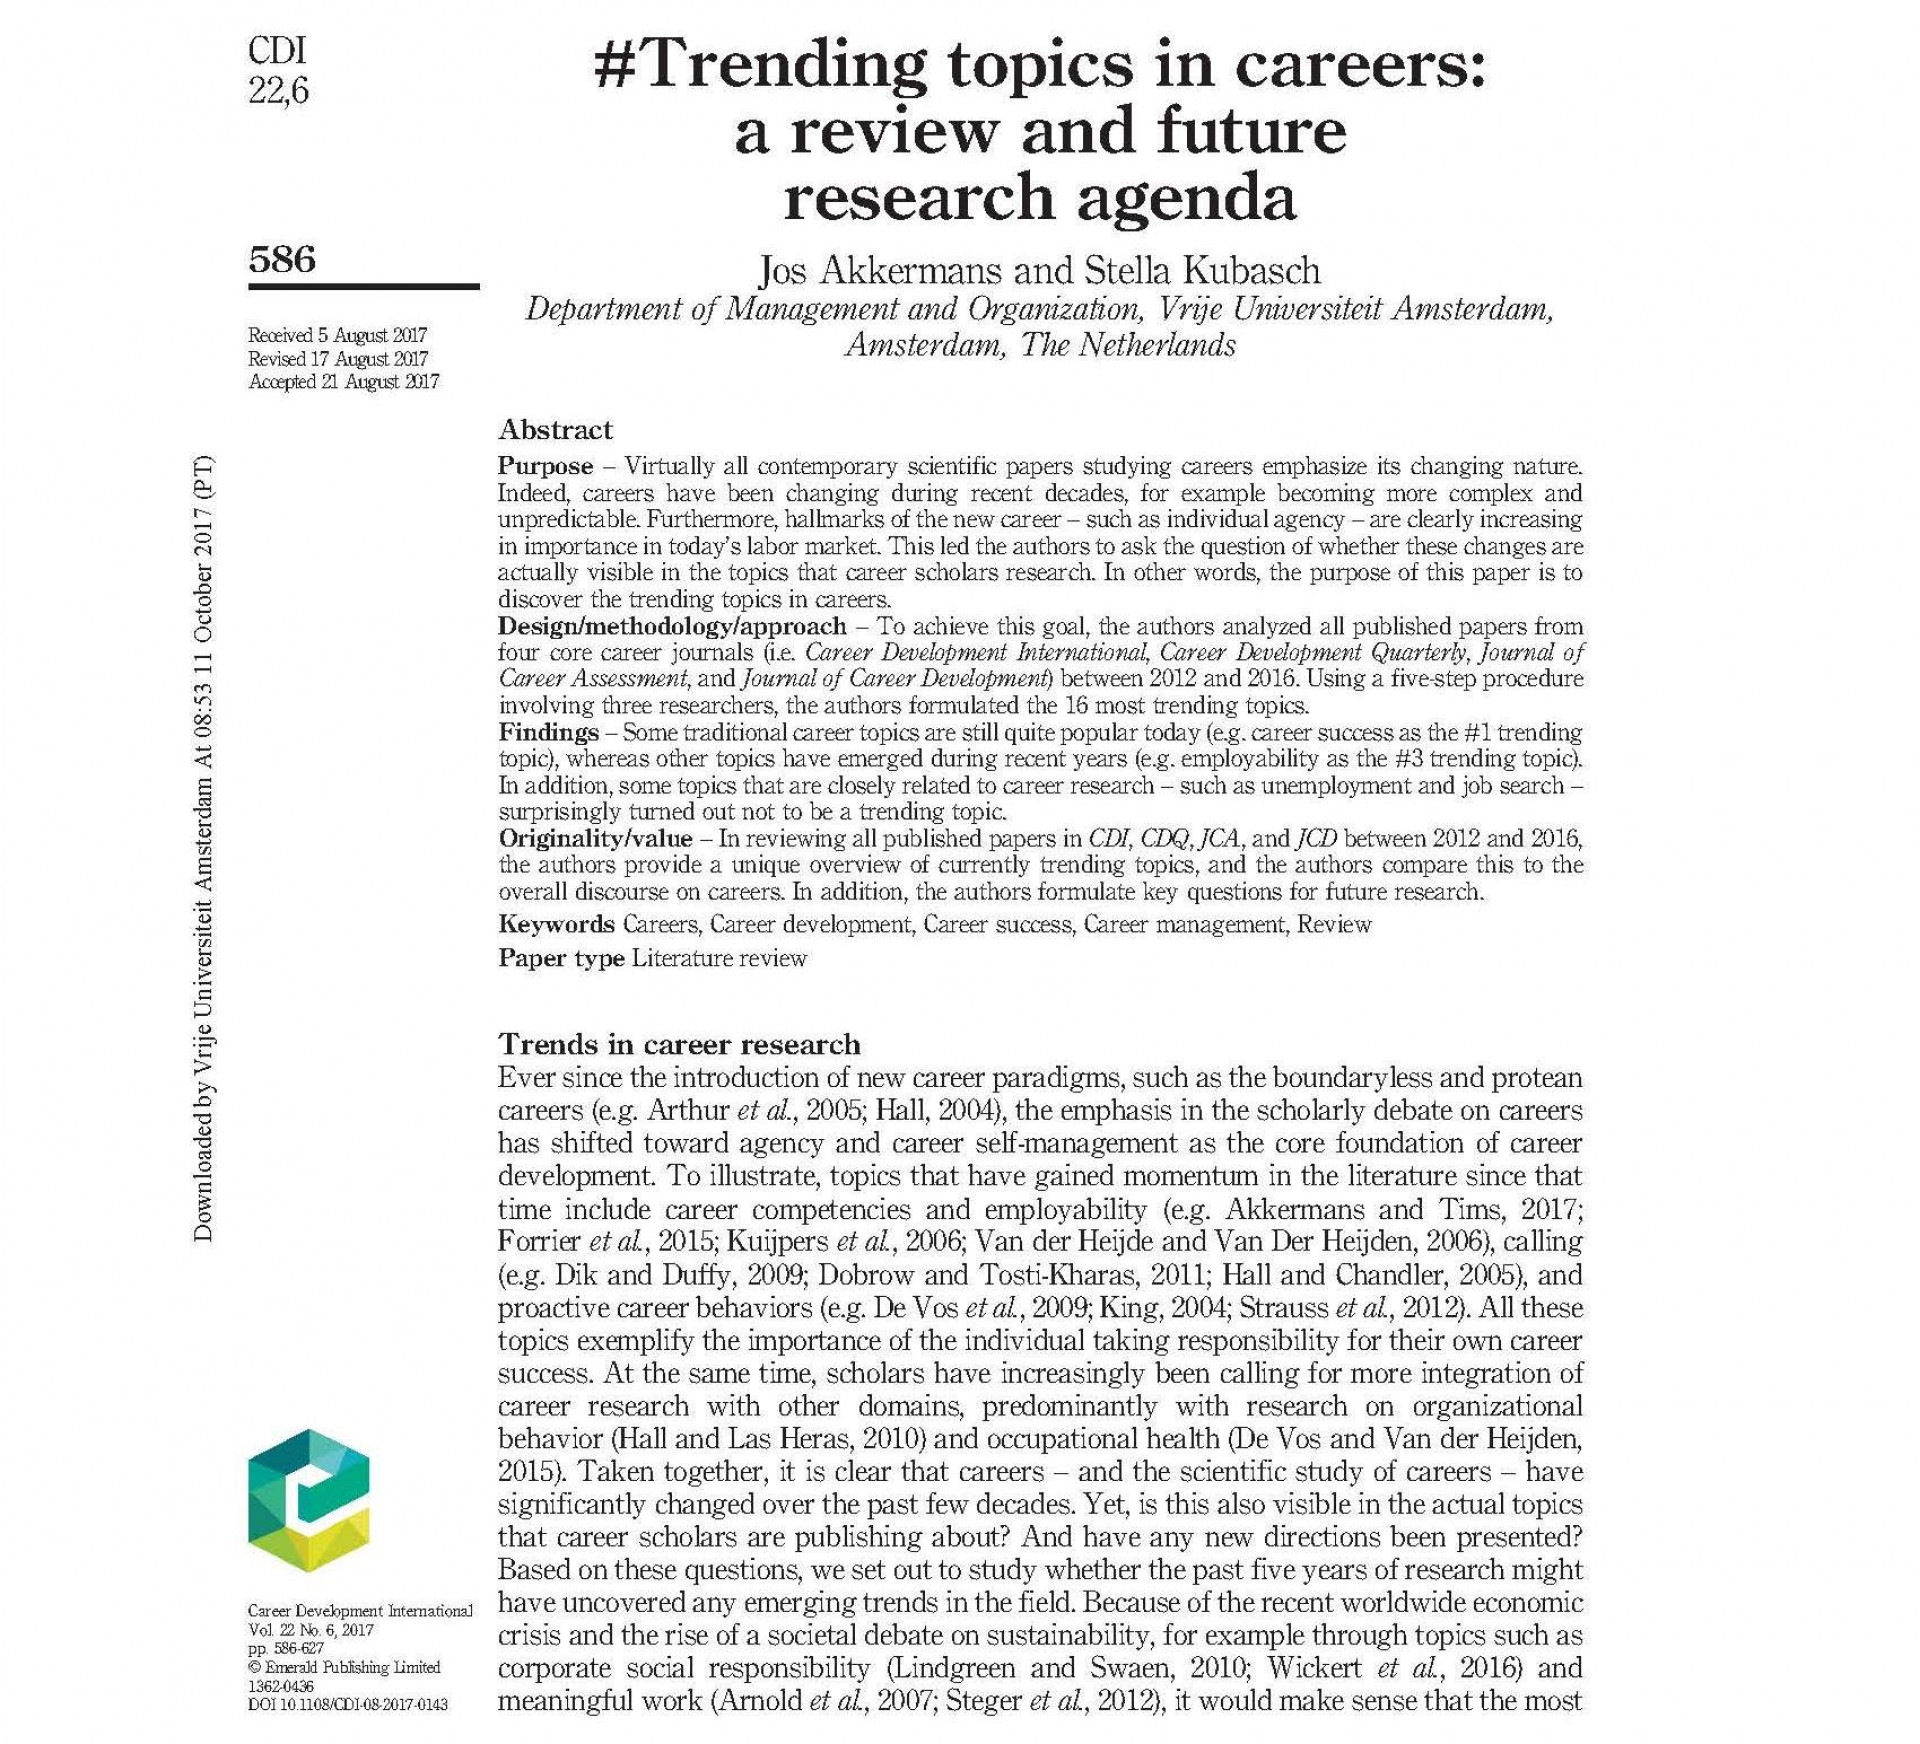 022 59e096d33a29650001209782 1620 20akkermans202620kubasch20201720 20trending20topics20in20careers Research Paper Topics For Impressive Papers Scientific High School Students Interesting 6th Graders In Physical Education 1920